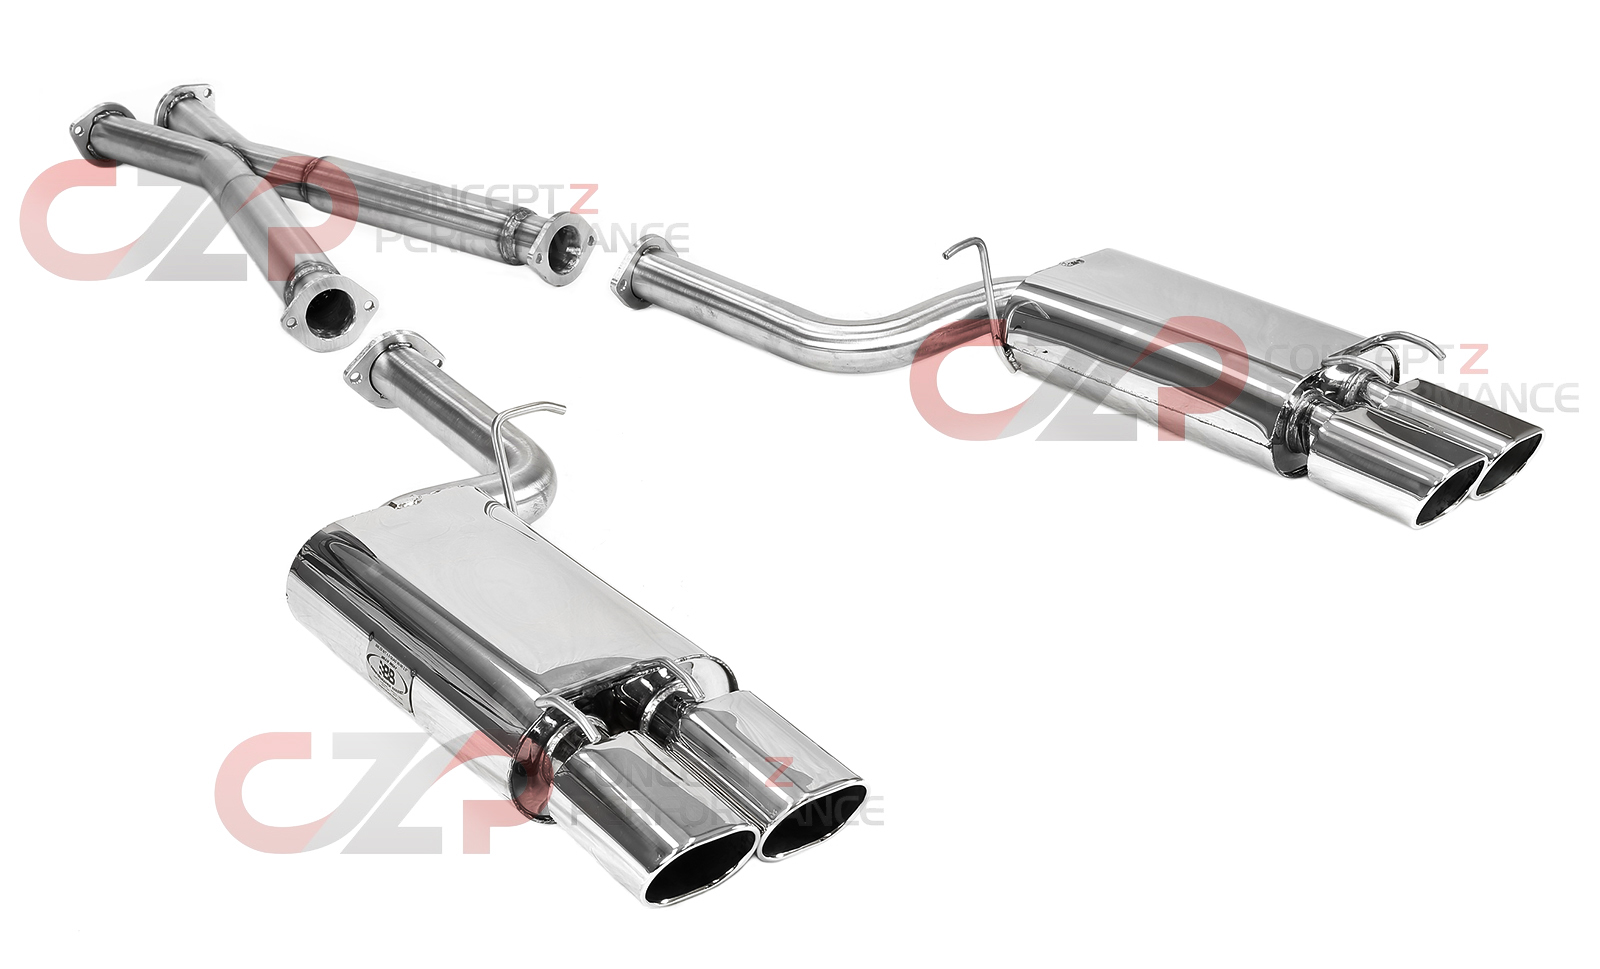 "B&B Stainless Stee Catback Exhaust System, 2.5"" Pipe w/ Quad 4.5"" Oval Tips, Resonated - Nissan 300ZX 90-95 Z32"